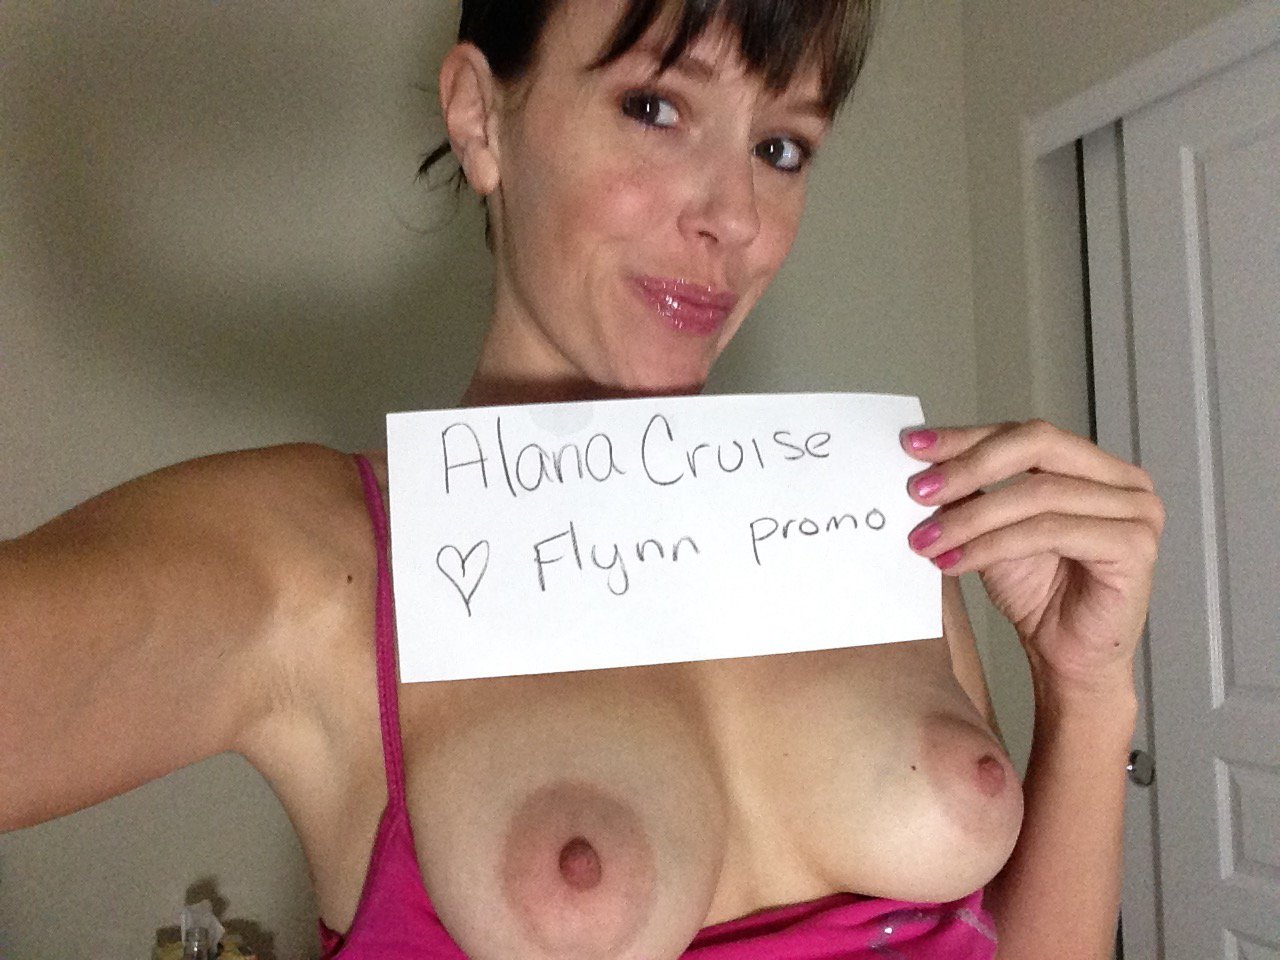 FanSign from the fantastic @AlanaCruisexxx